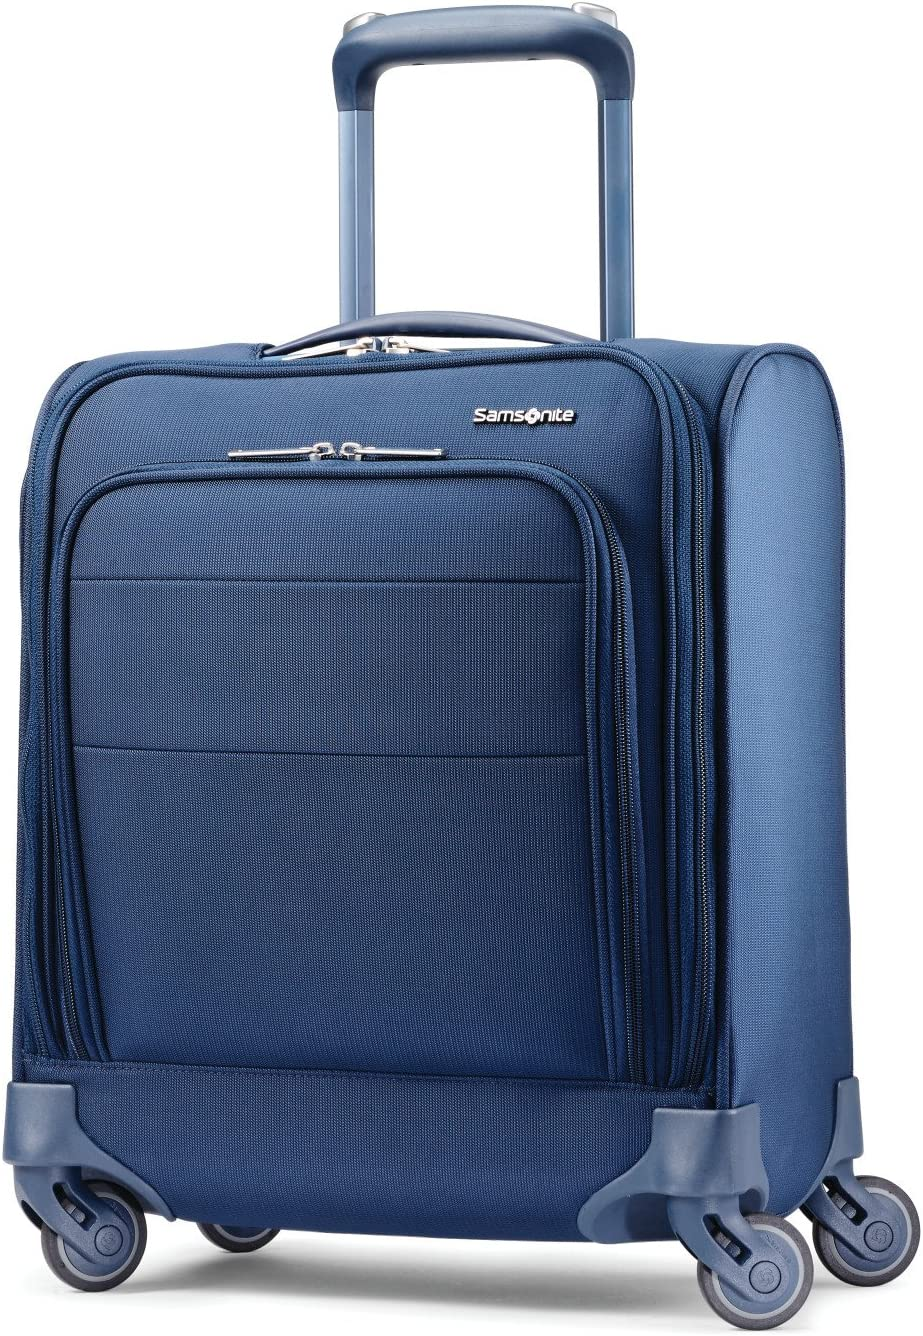 Samsonite Flexis Softside Expandable Luggage with Spinner Wheels, Carbon Blue, Underseater